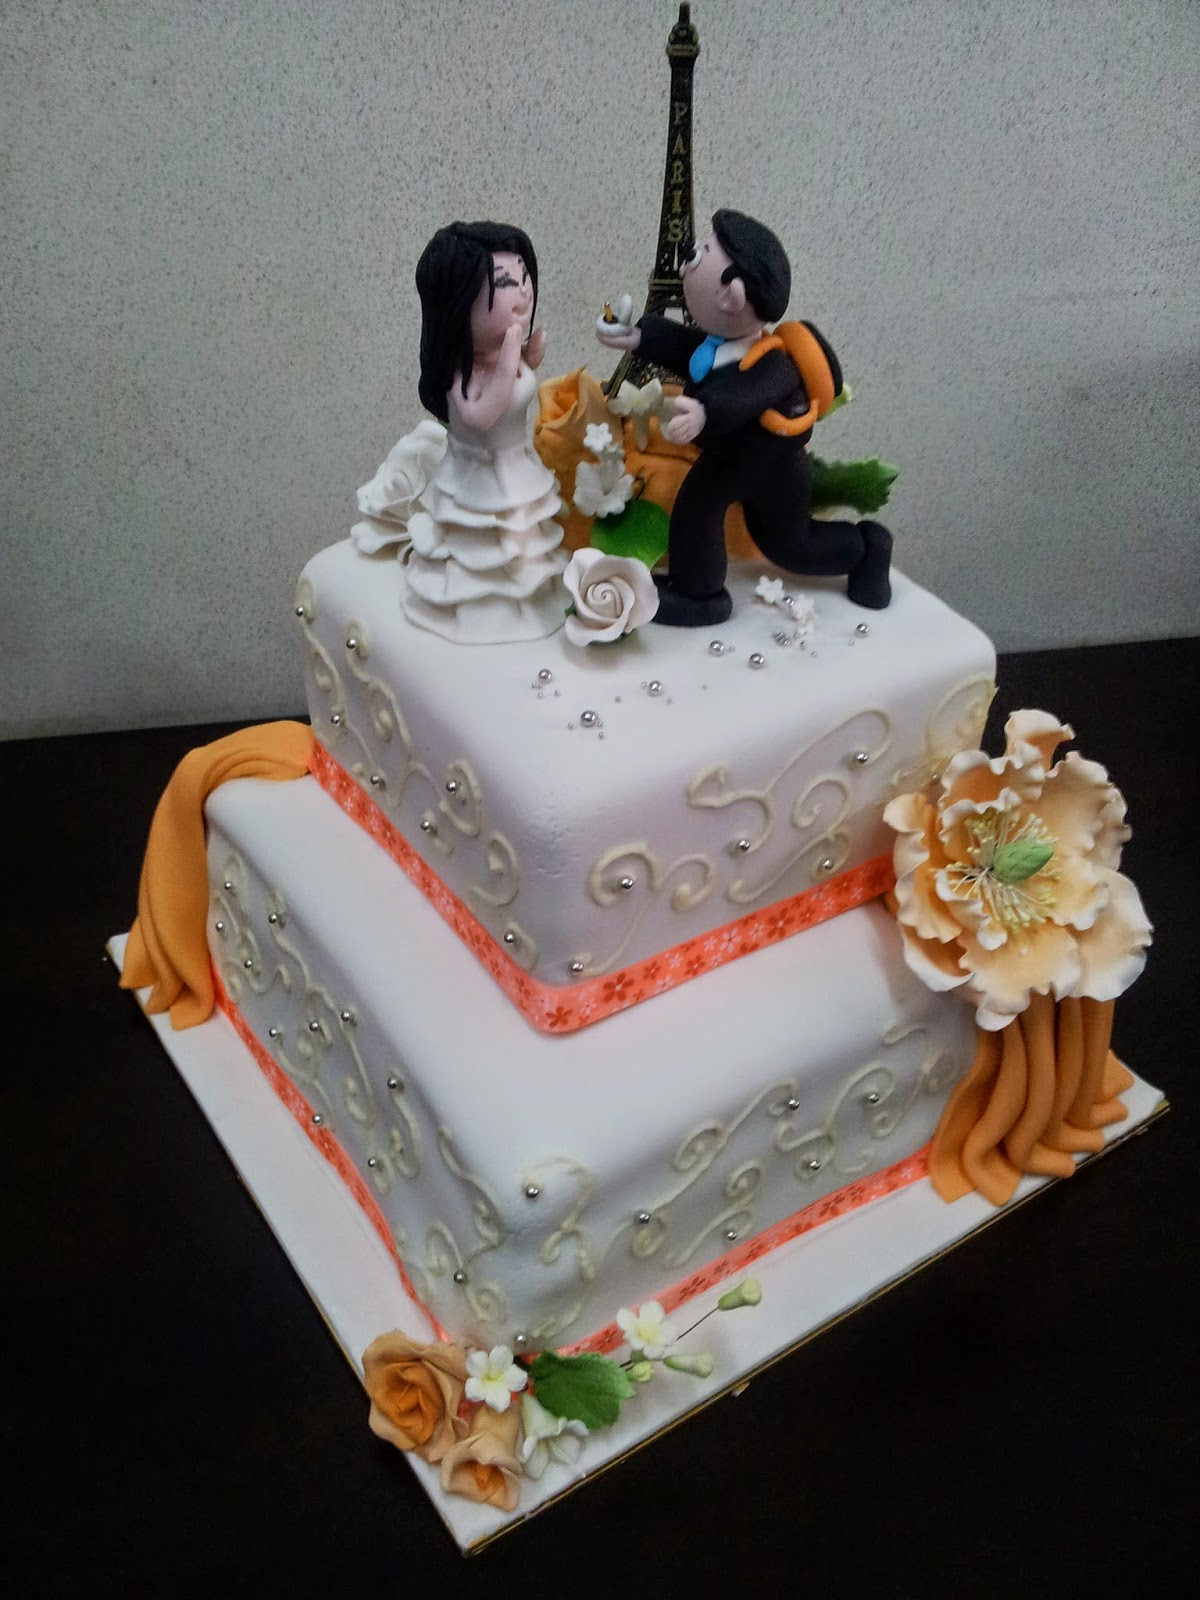 L mis Cakes & Cupcakes Ipoh Contact : 012-5991233 : 2 Tier ...